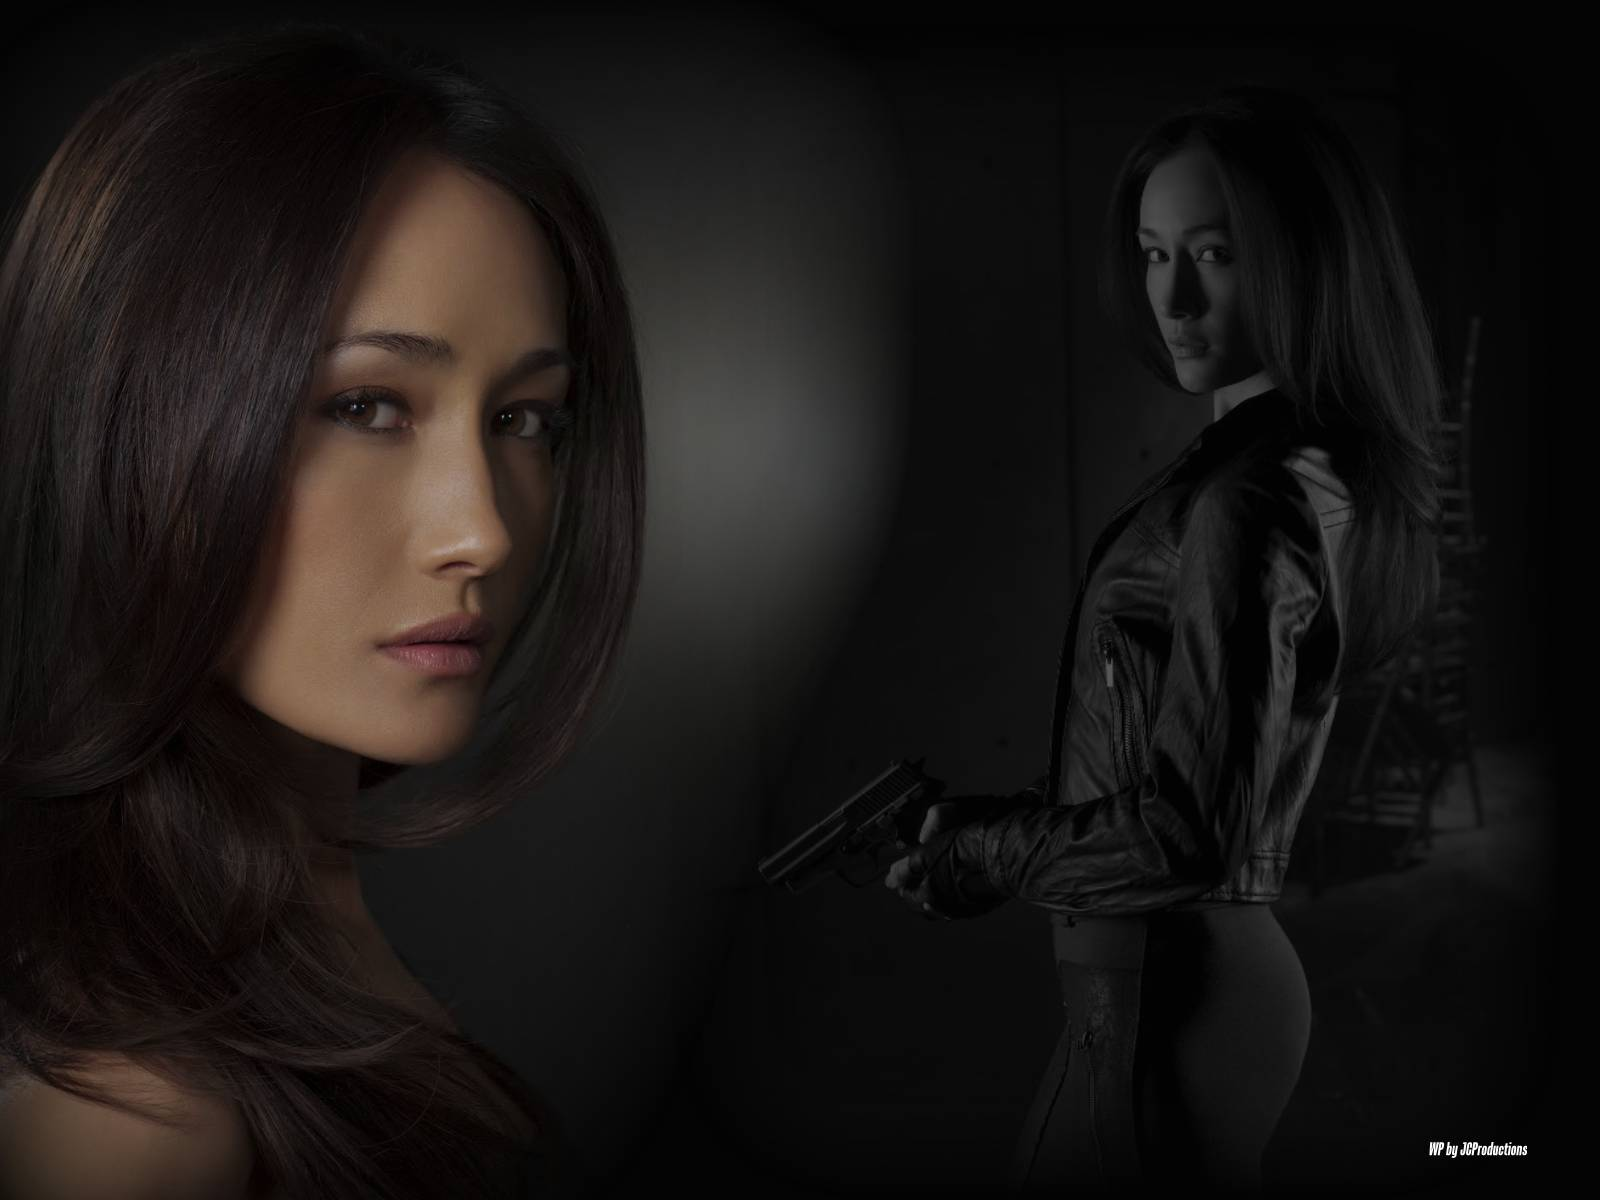 Maggie Q Wallpapers High Resolution and Quality Download